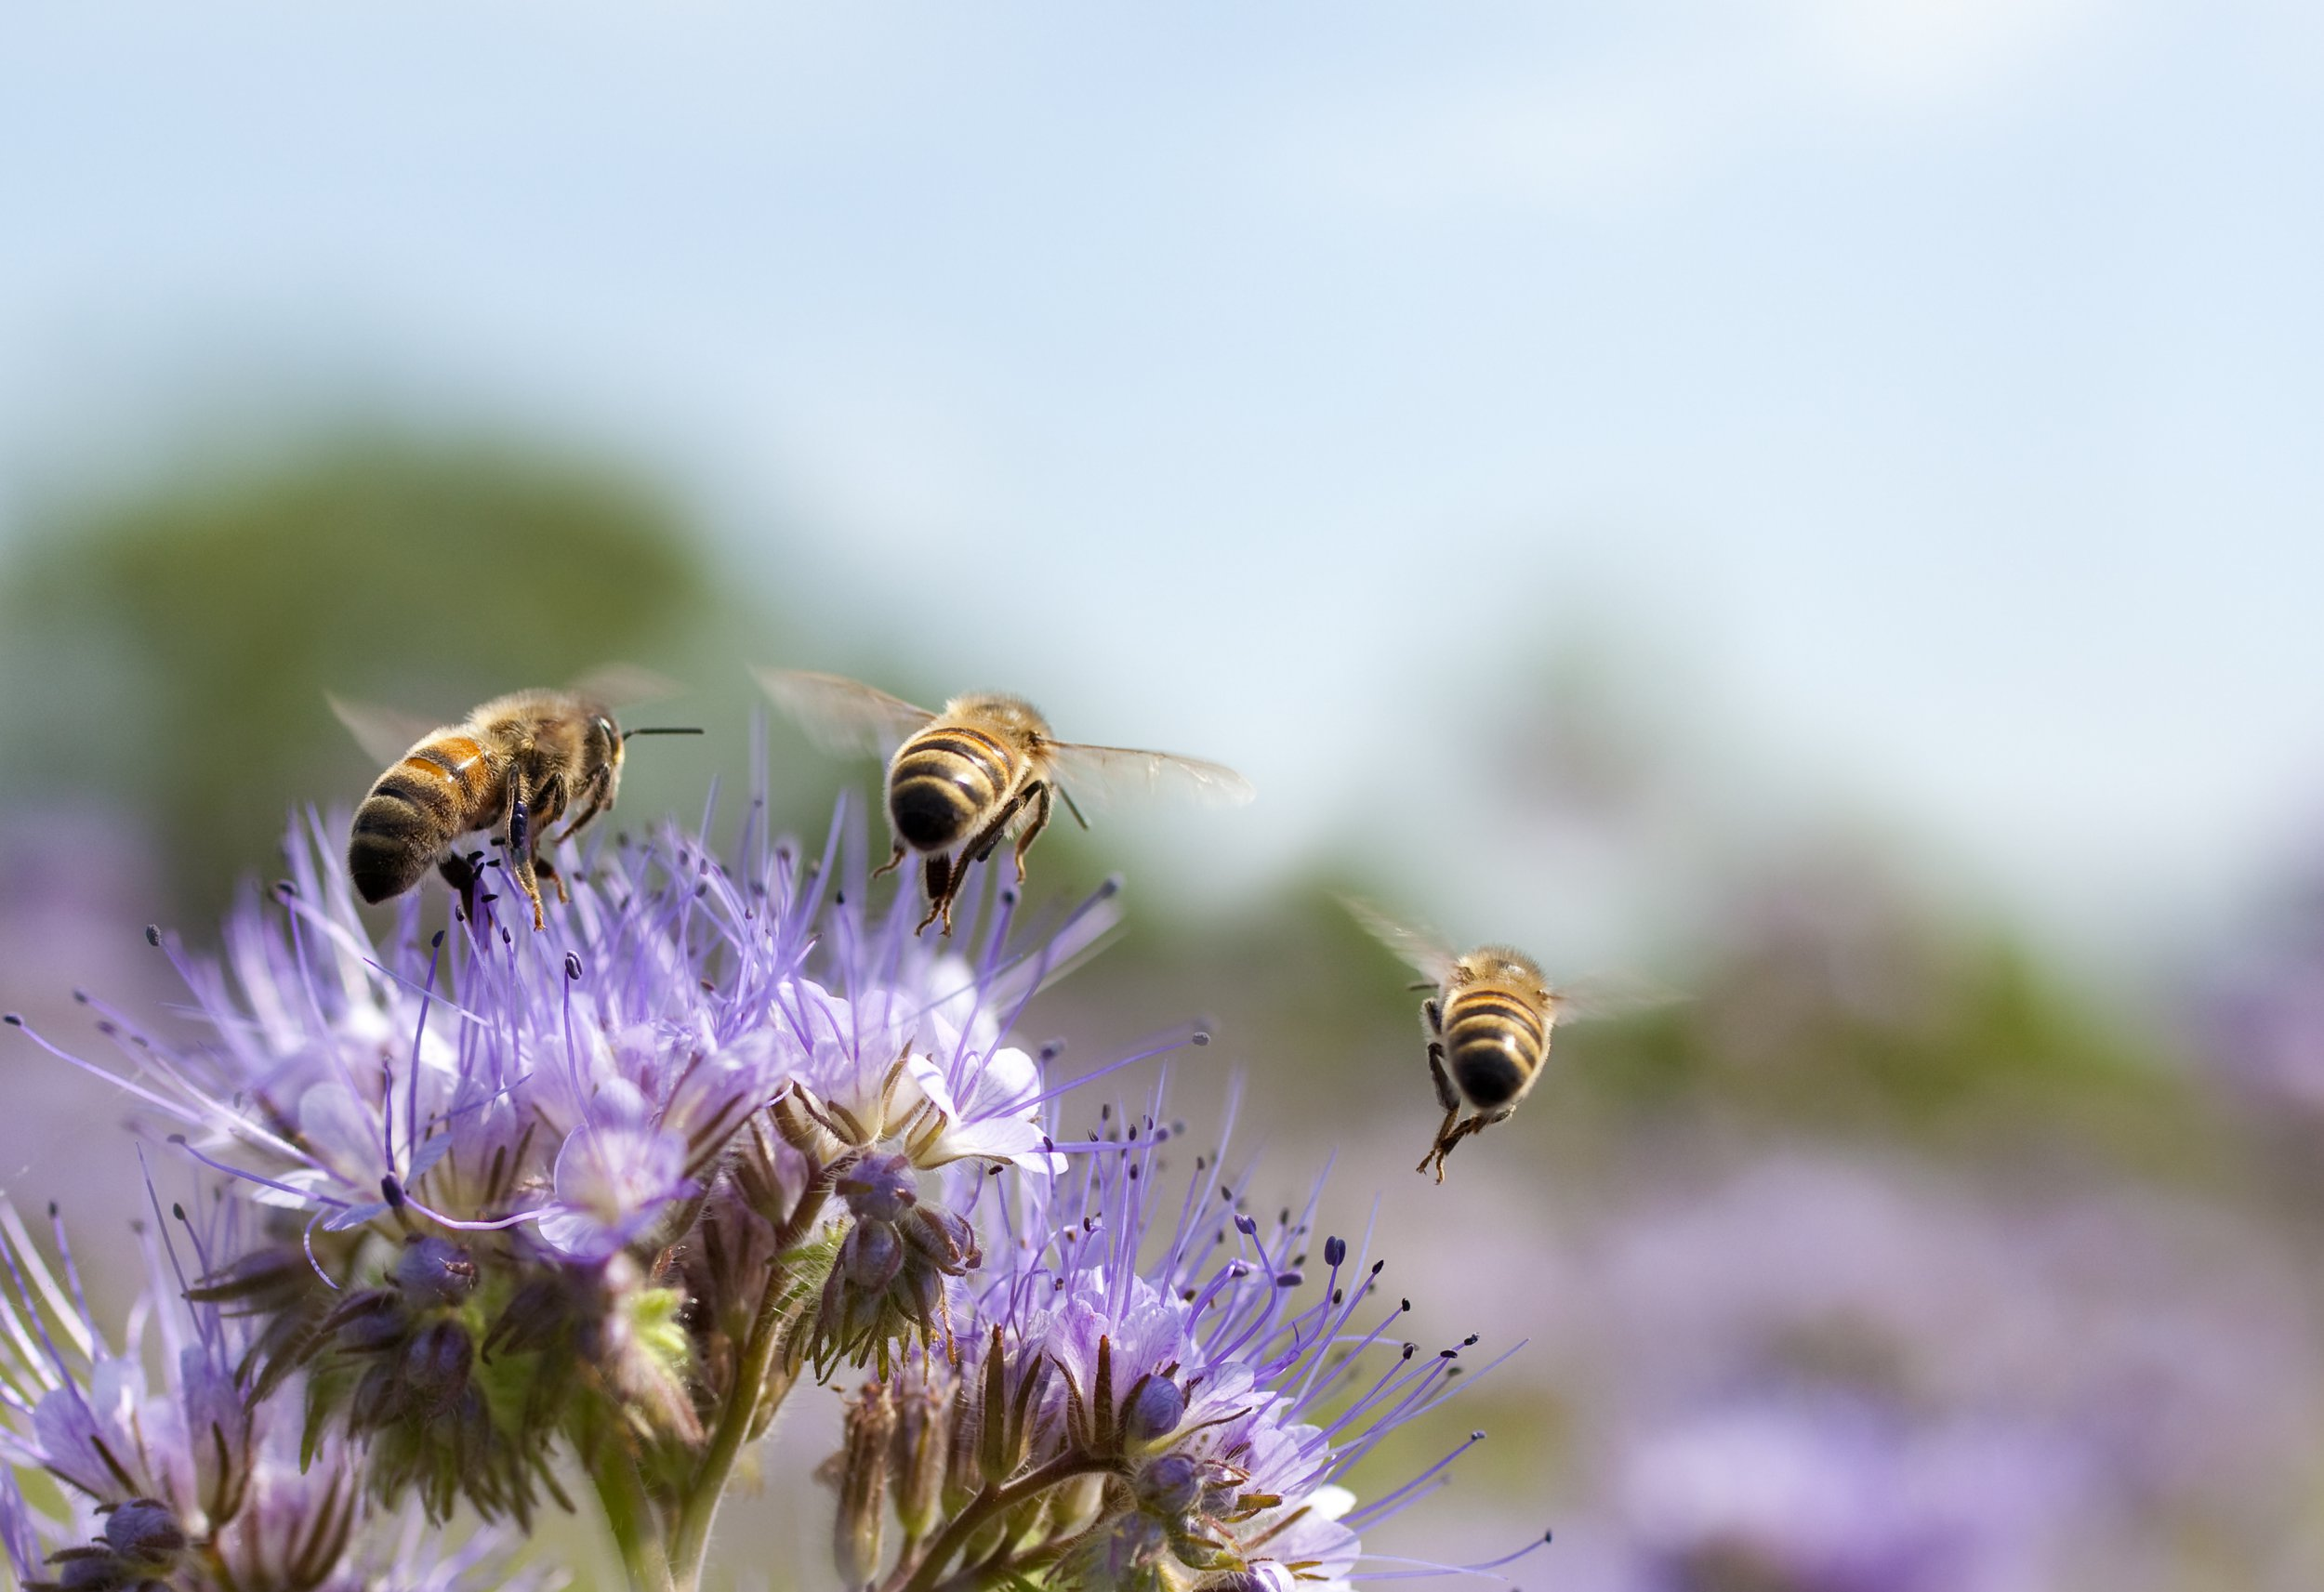 Washout August spells trouble for British bees